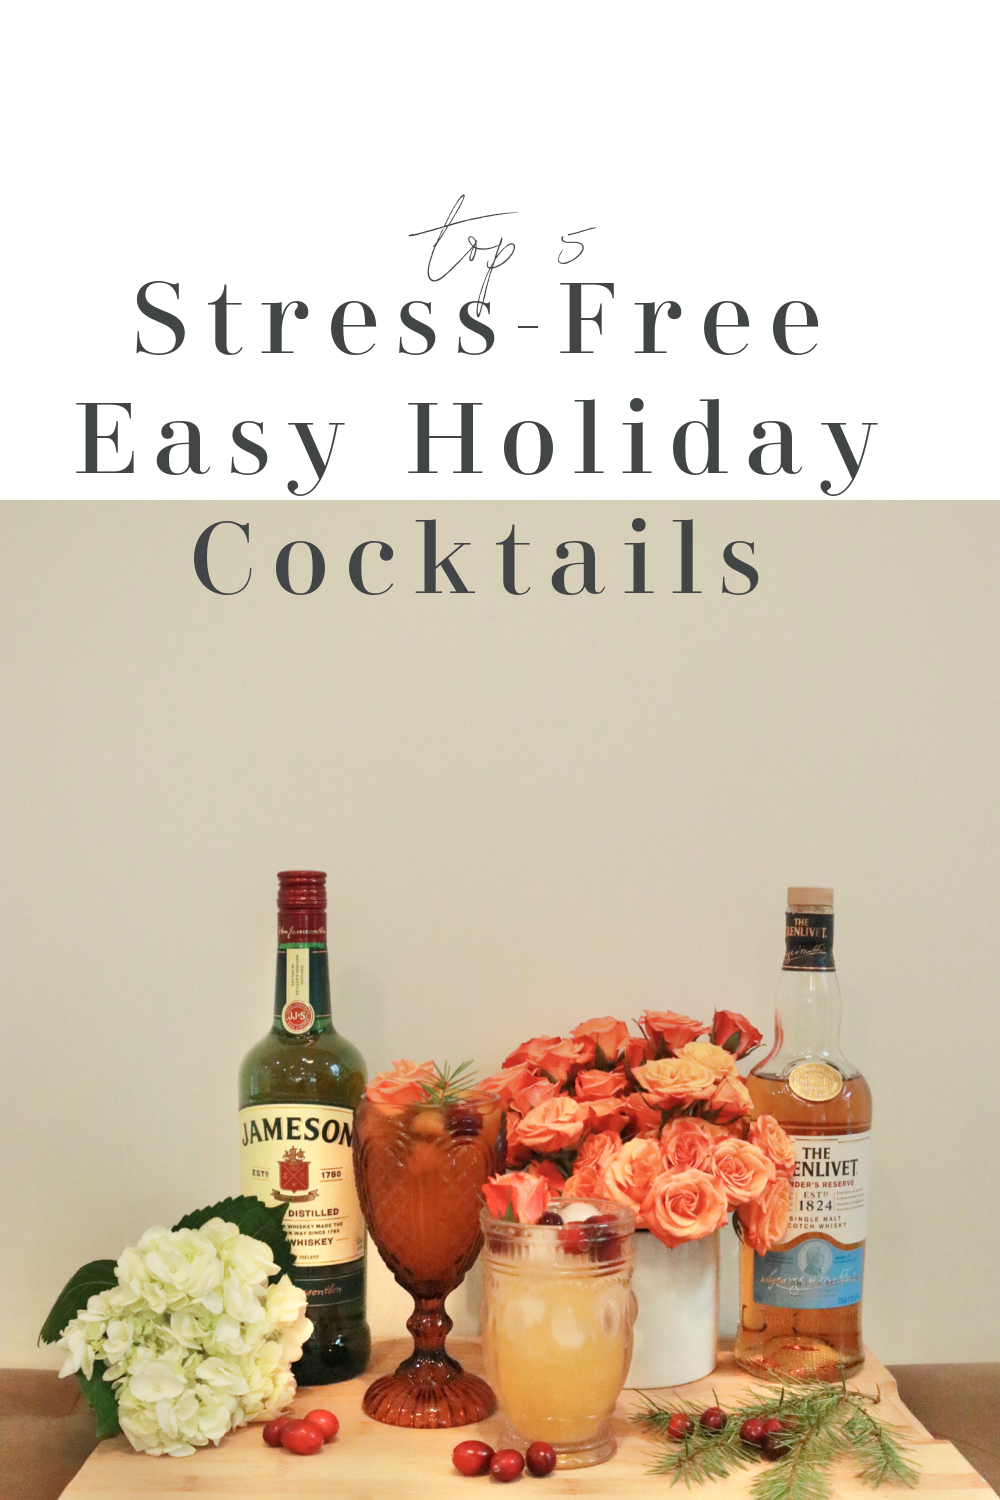 5 Stress-Free Easy Holiday Cocktails to Enjoy this Season, a blog post by Liz in Los Angeles, Los Angeles Lifestyle Blogger, an image of an easy cocktail and flowers